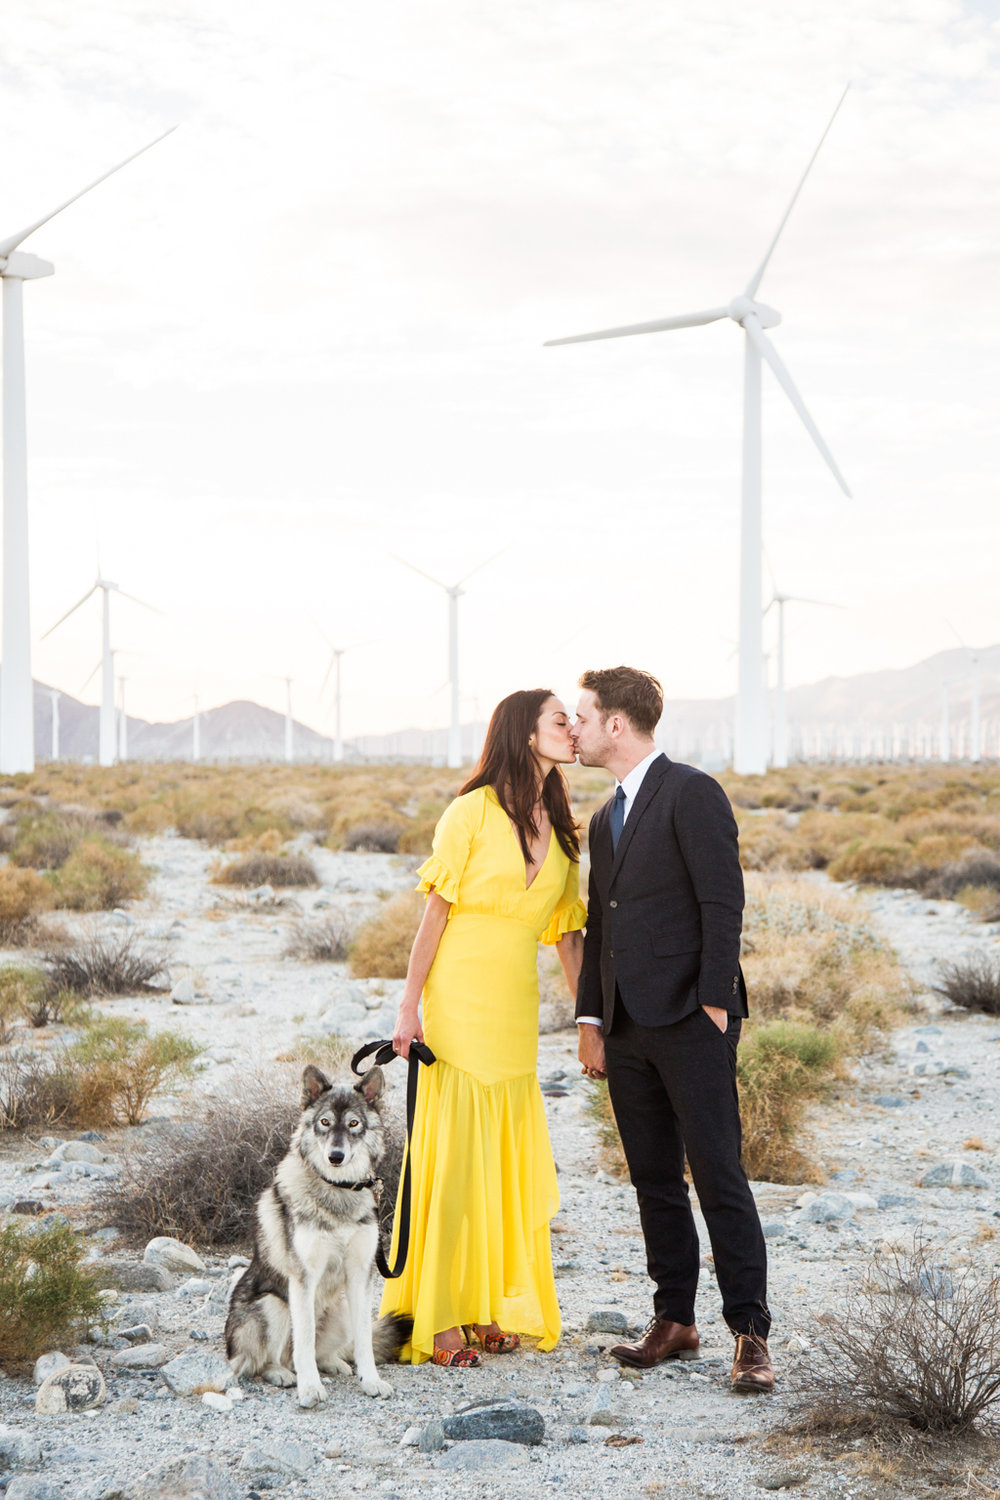 Engagement shoot at Palm Springs windmills